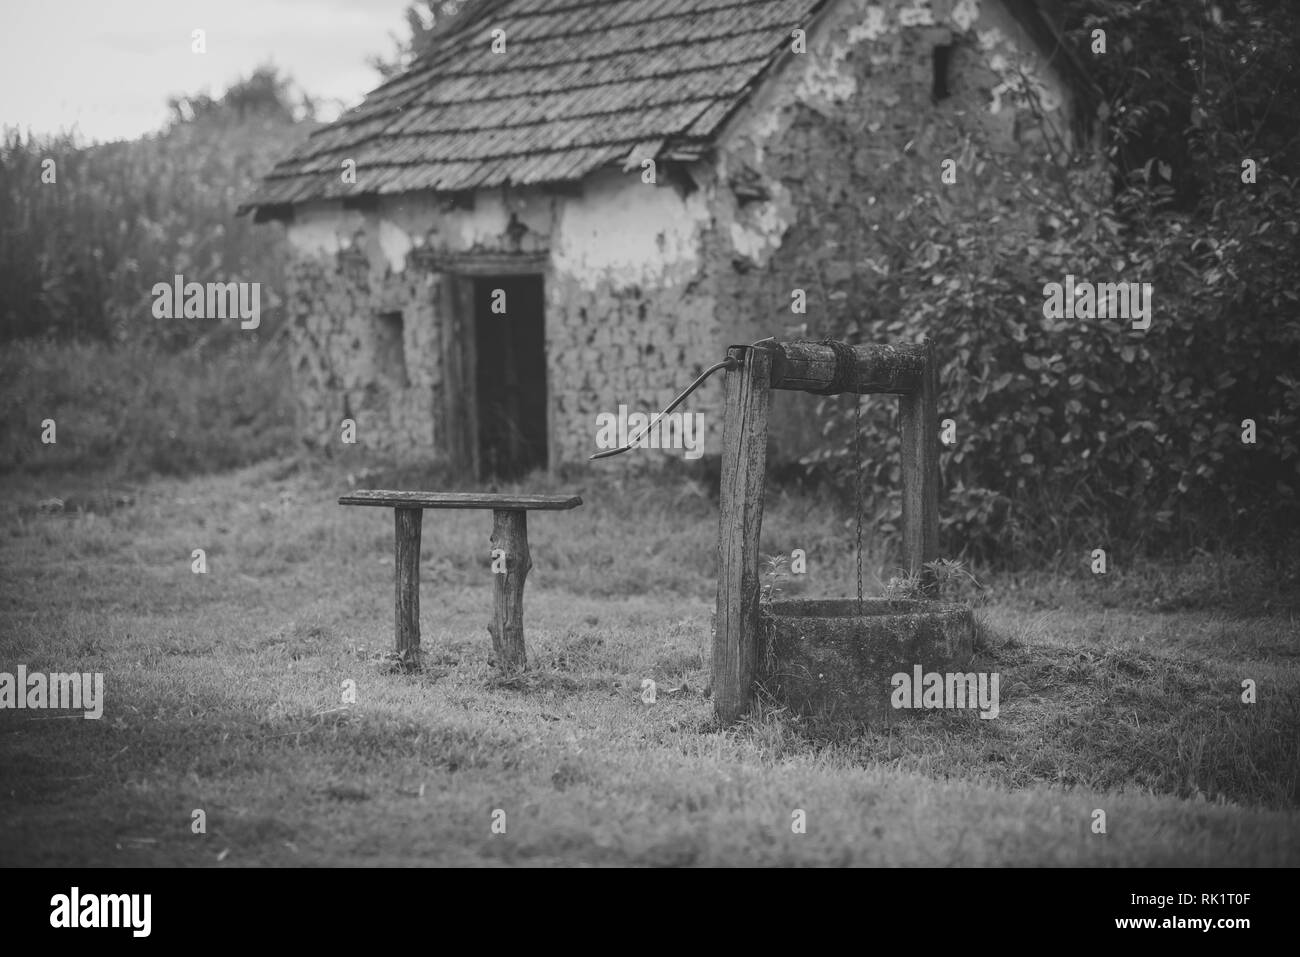 Village with abandoned building - Stock Image